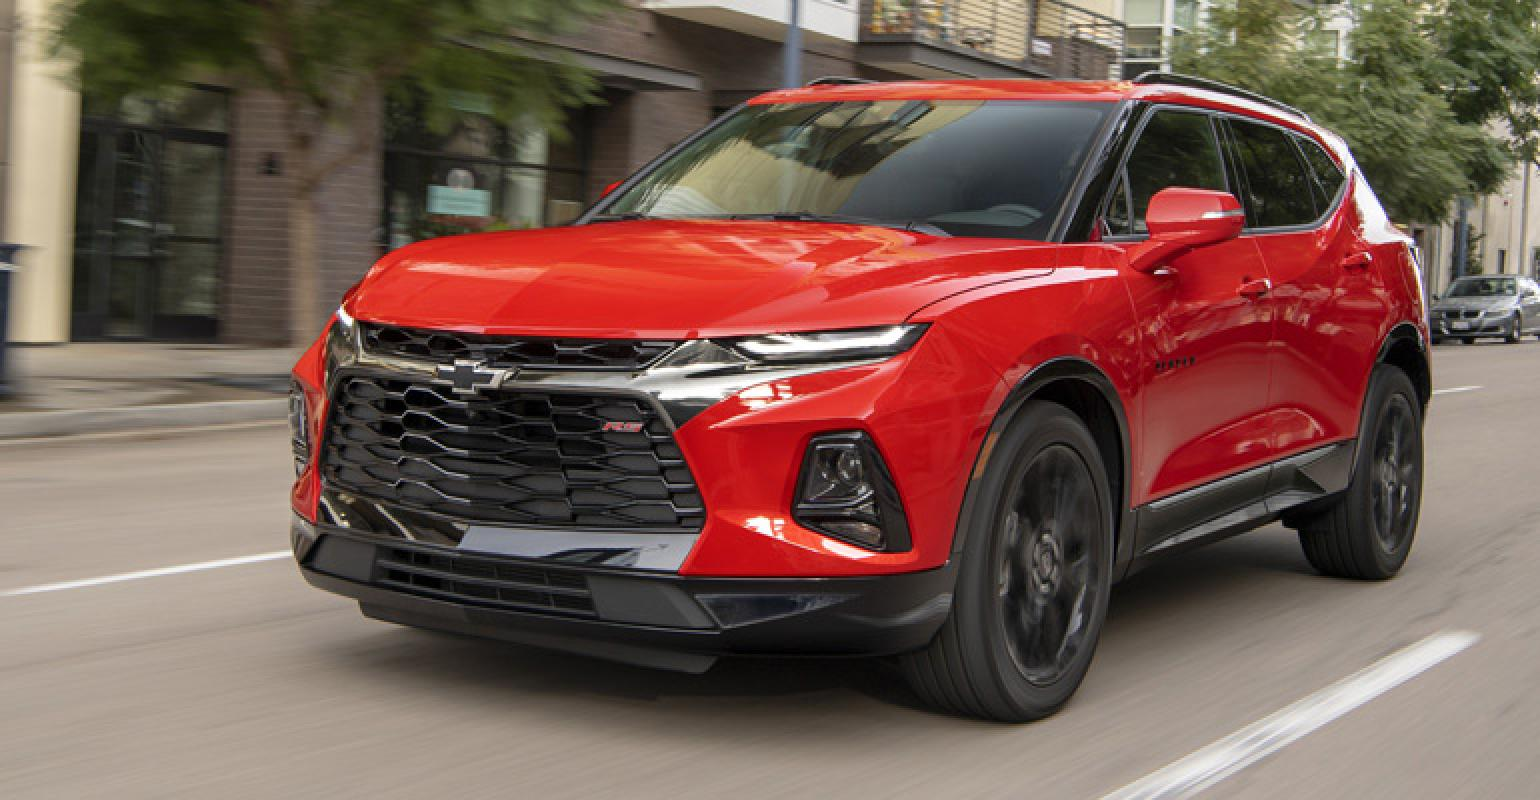 General Motors 2019 Chevy Blazer Red Hot Entry To Smoking Segment